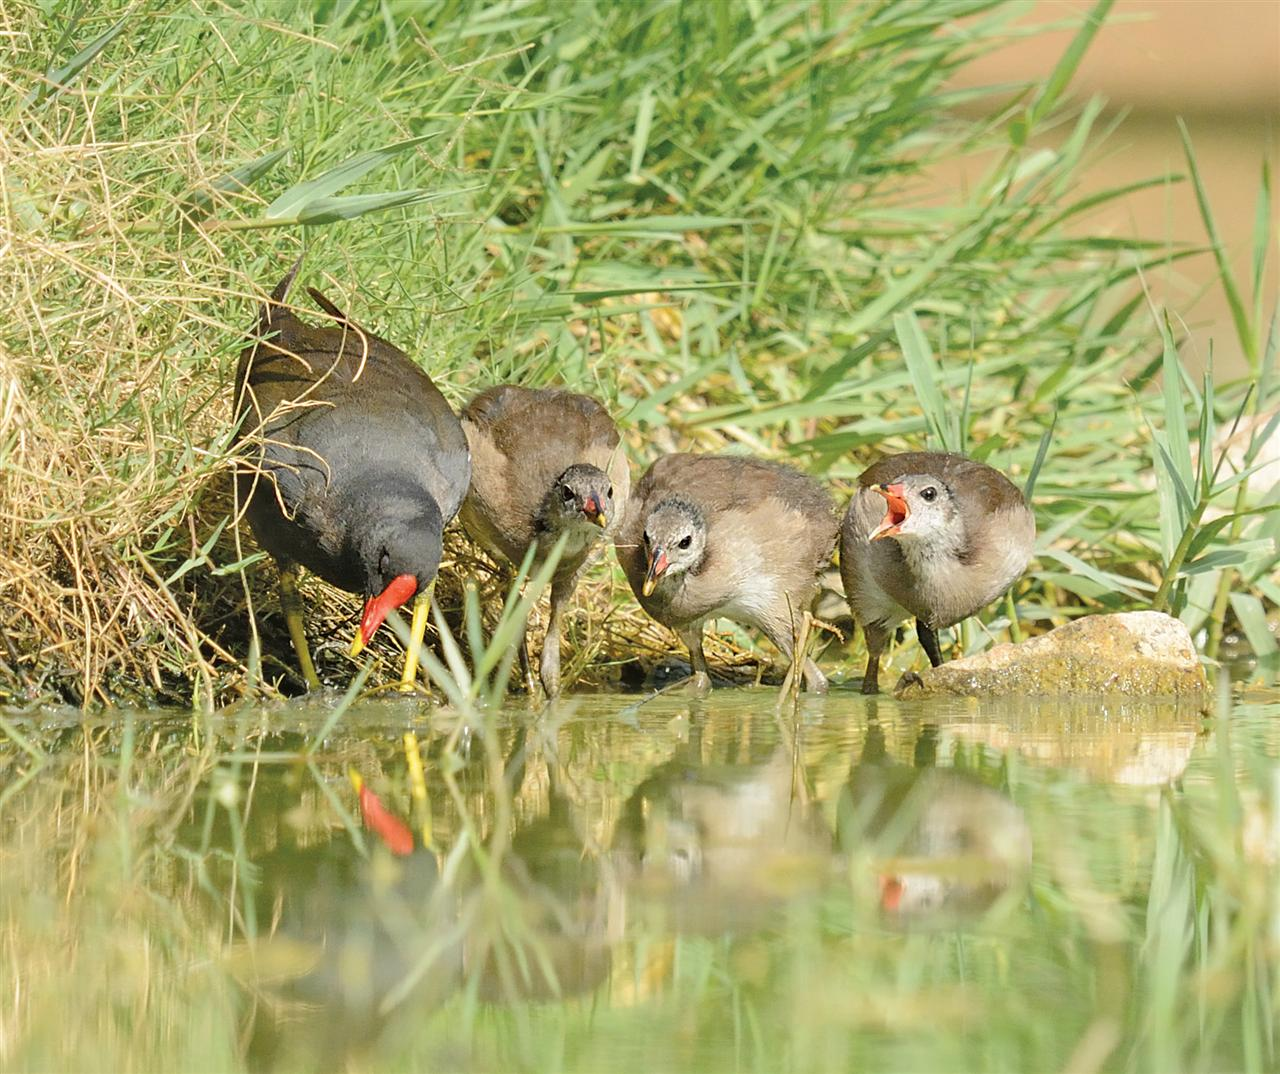 They are residents of the lake and the shrubs around it in the Dalikhana